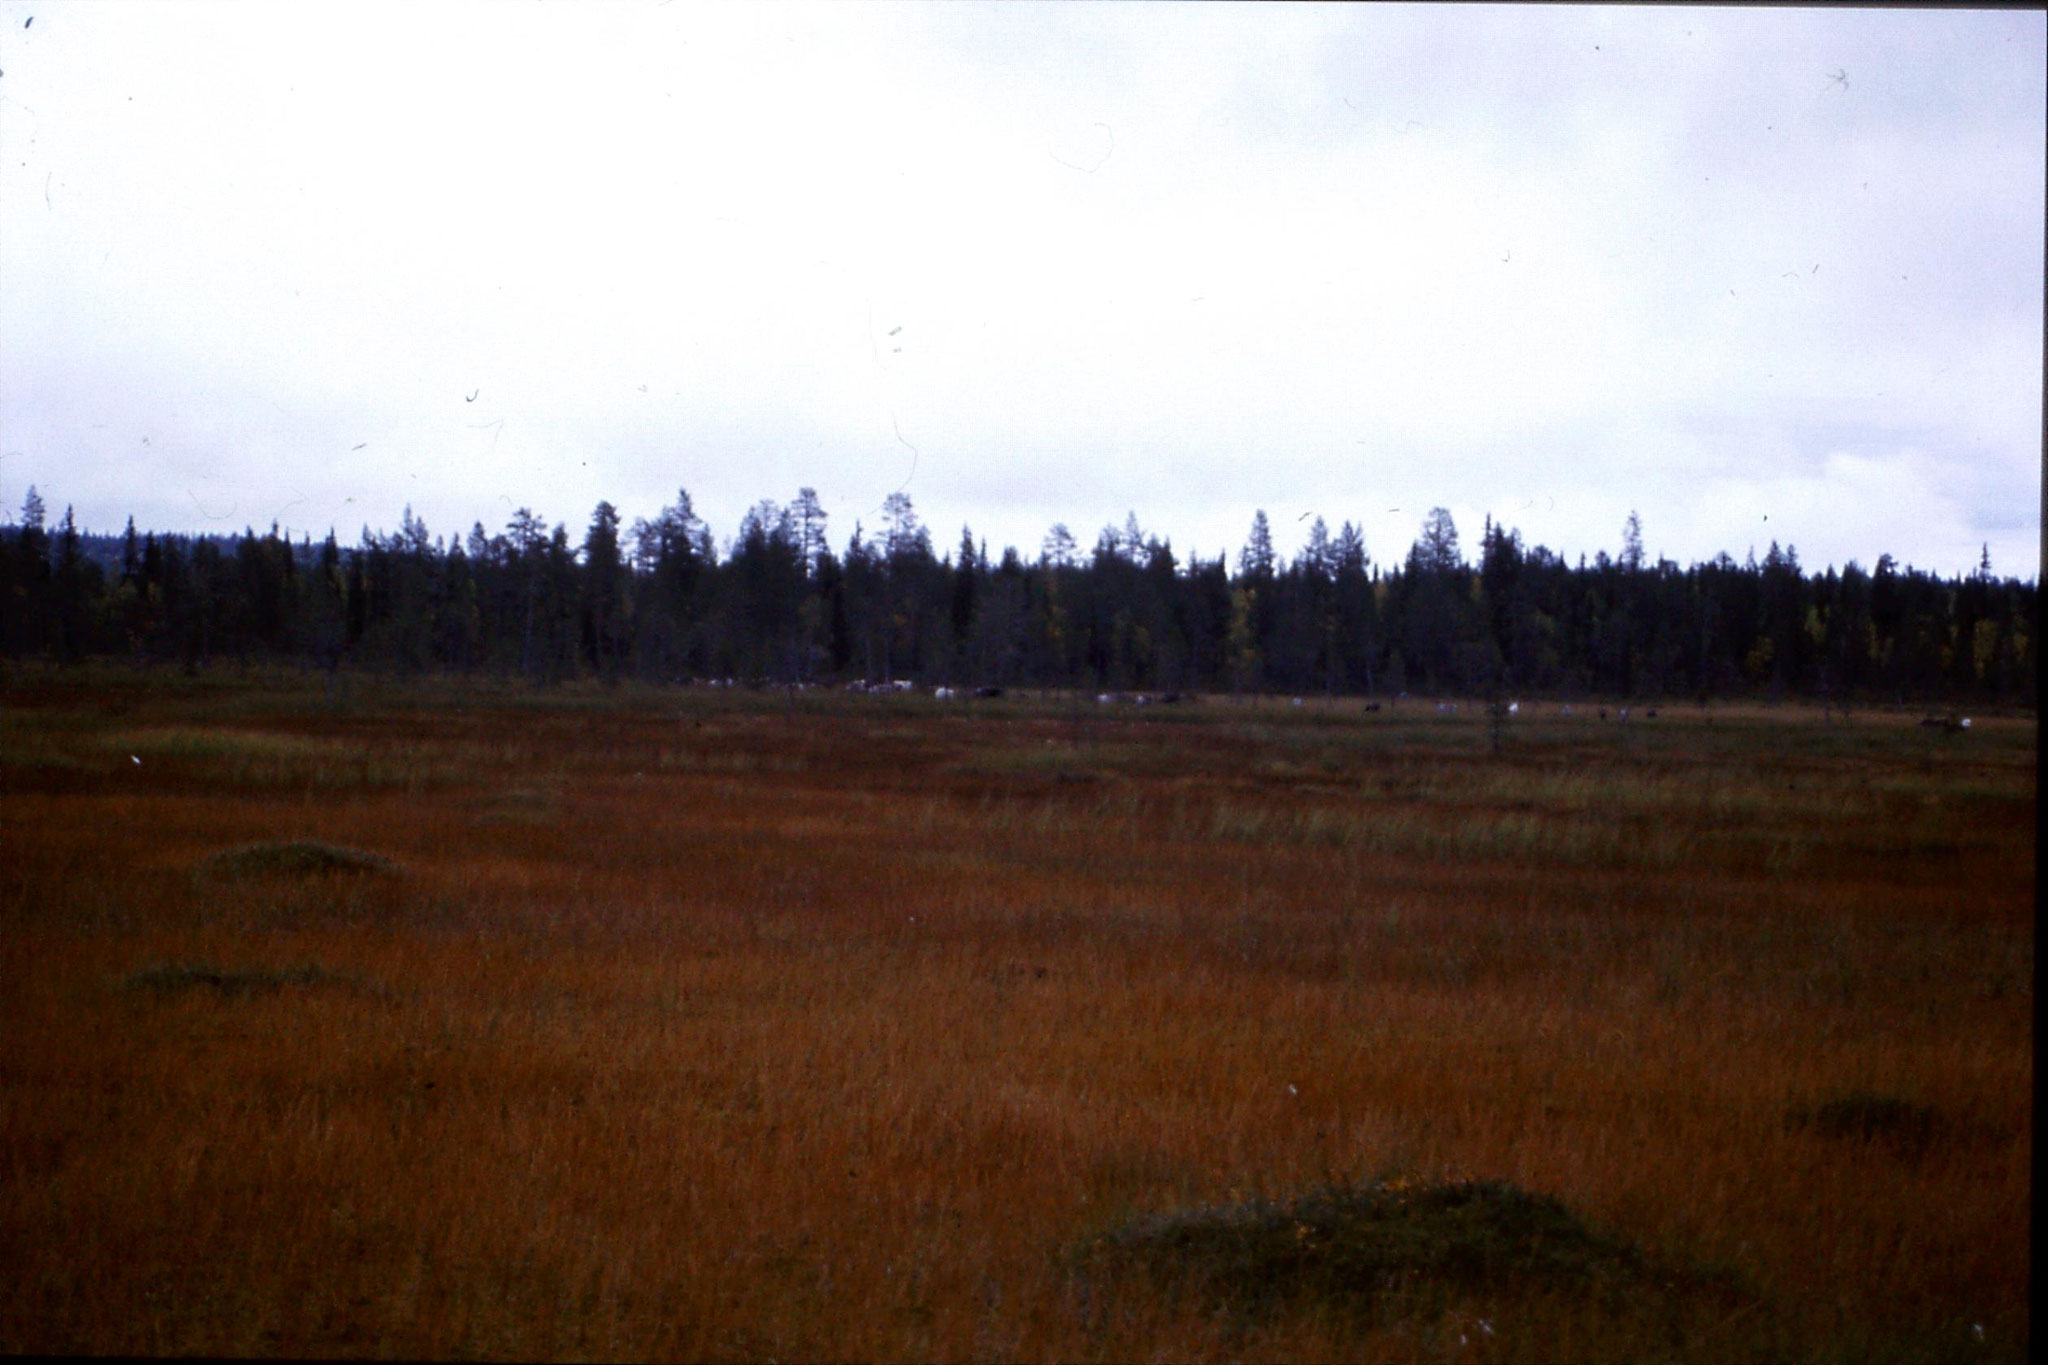 12/9/1988: 7: reindeer on road south from Jokkmokk